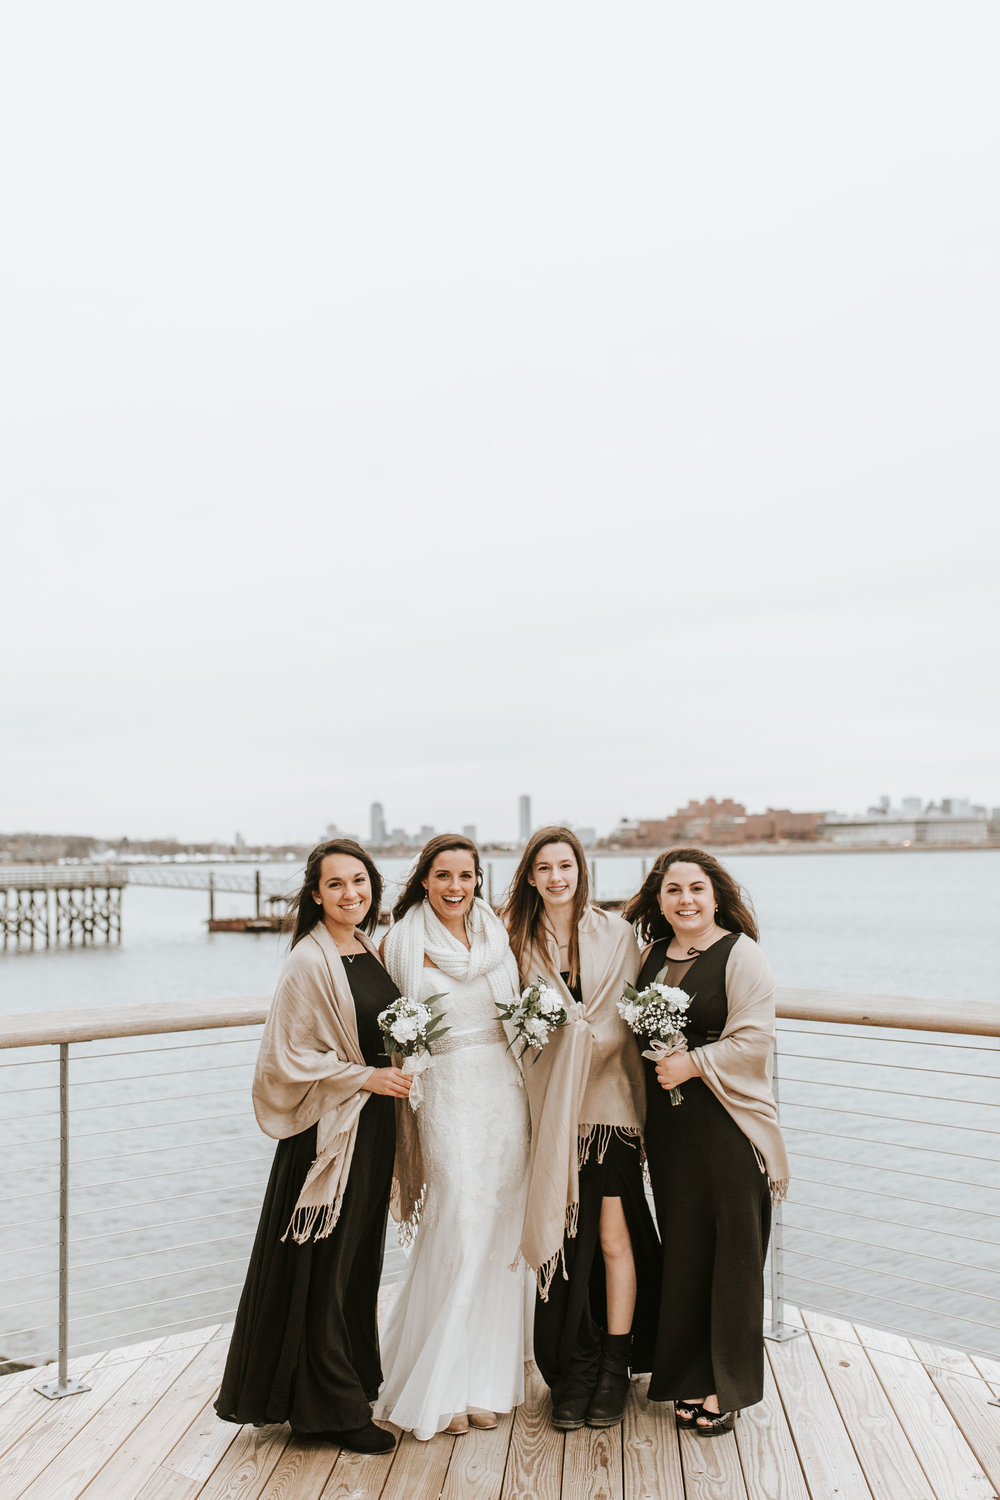 nicole-daacke-photography-boston-massachusetts-seaside-intimate-winter-wedding-photographer-27.jpg